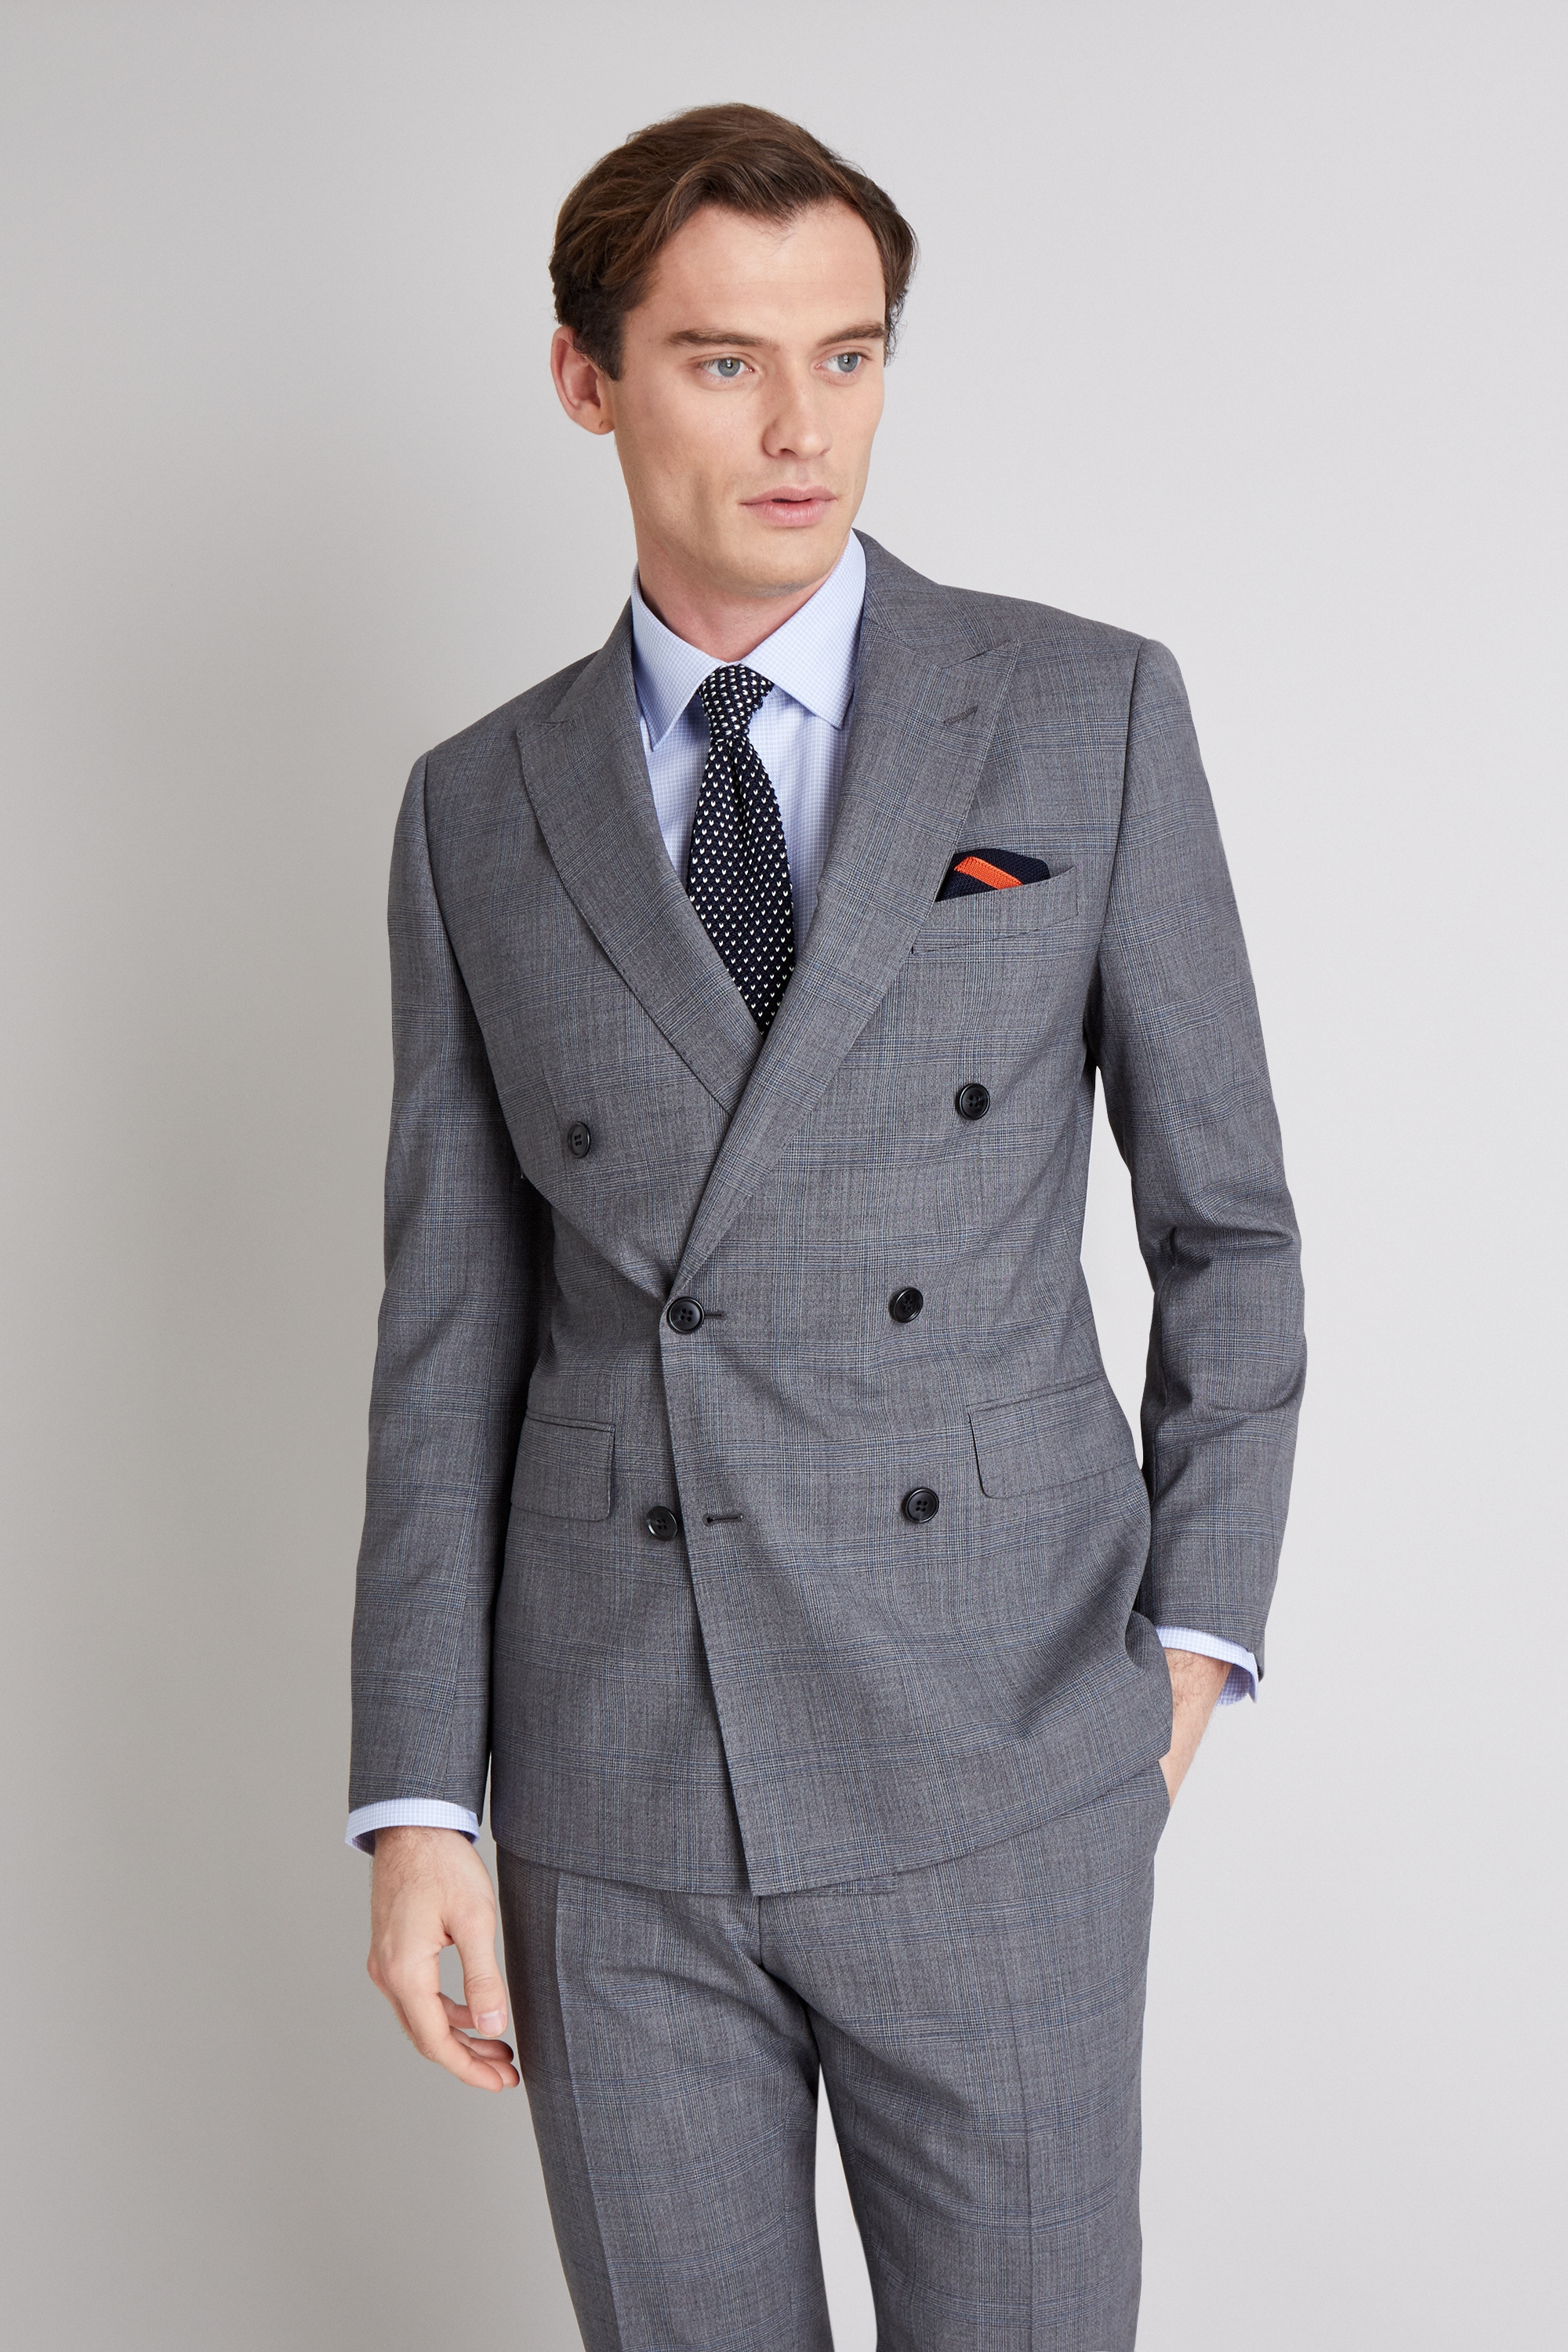 c5692947 Details about Moss 1851 Mens Grey Blue Check Suit Jacket Tailored Fit  Double Breasted Blazer